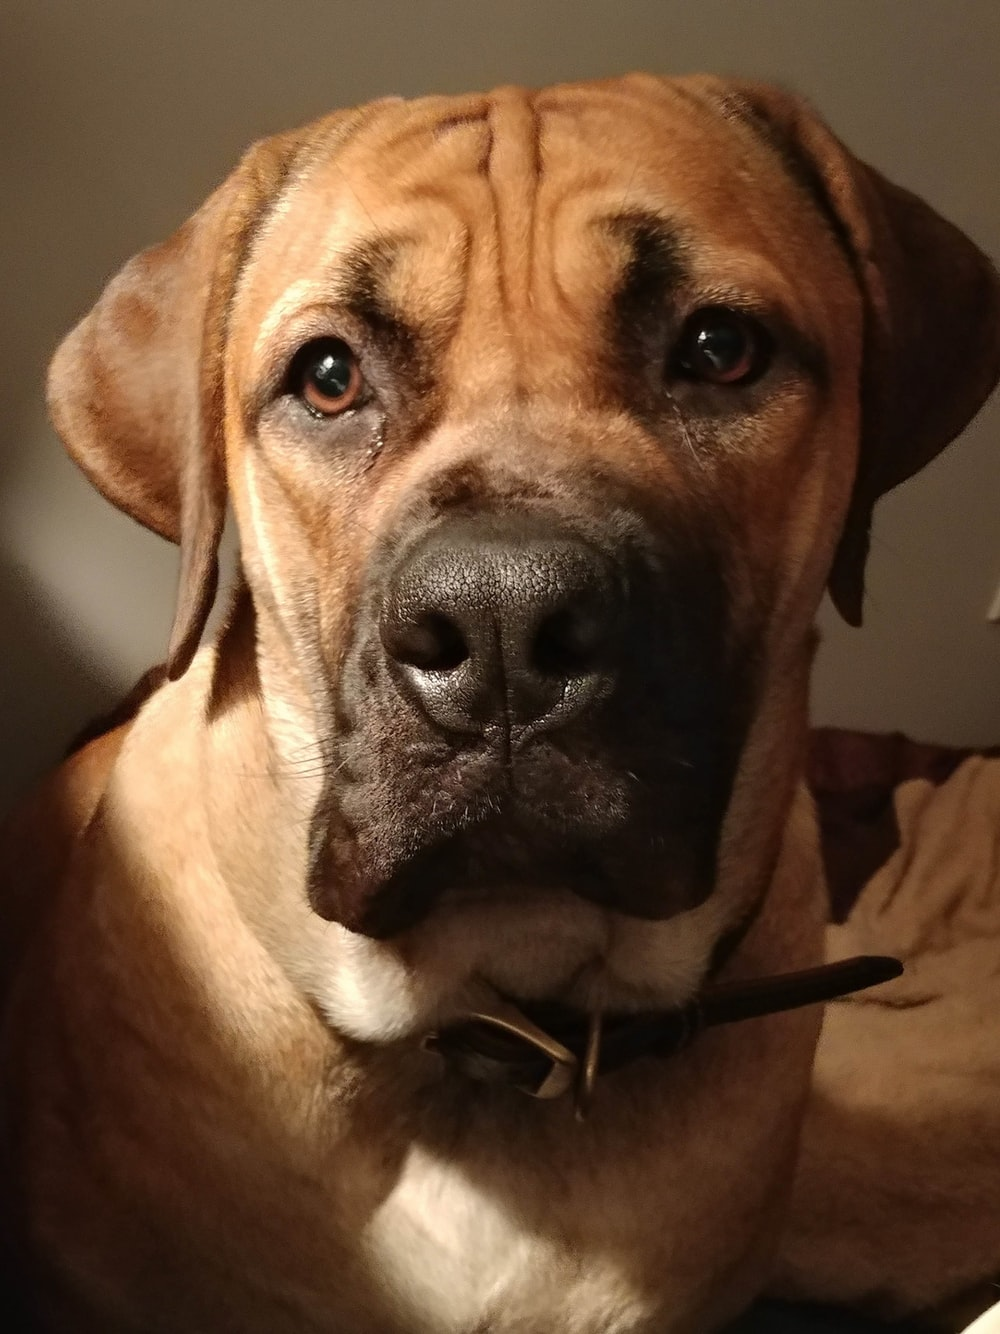 brown short coated dog with black collar